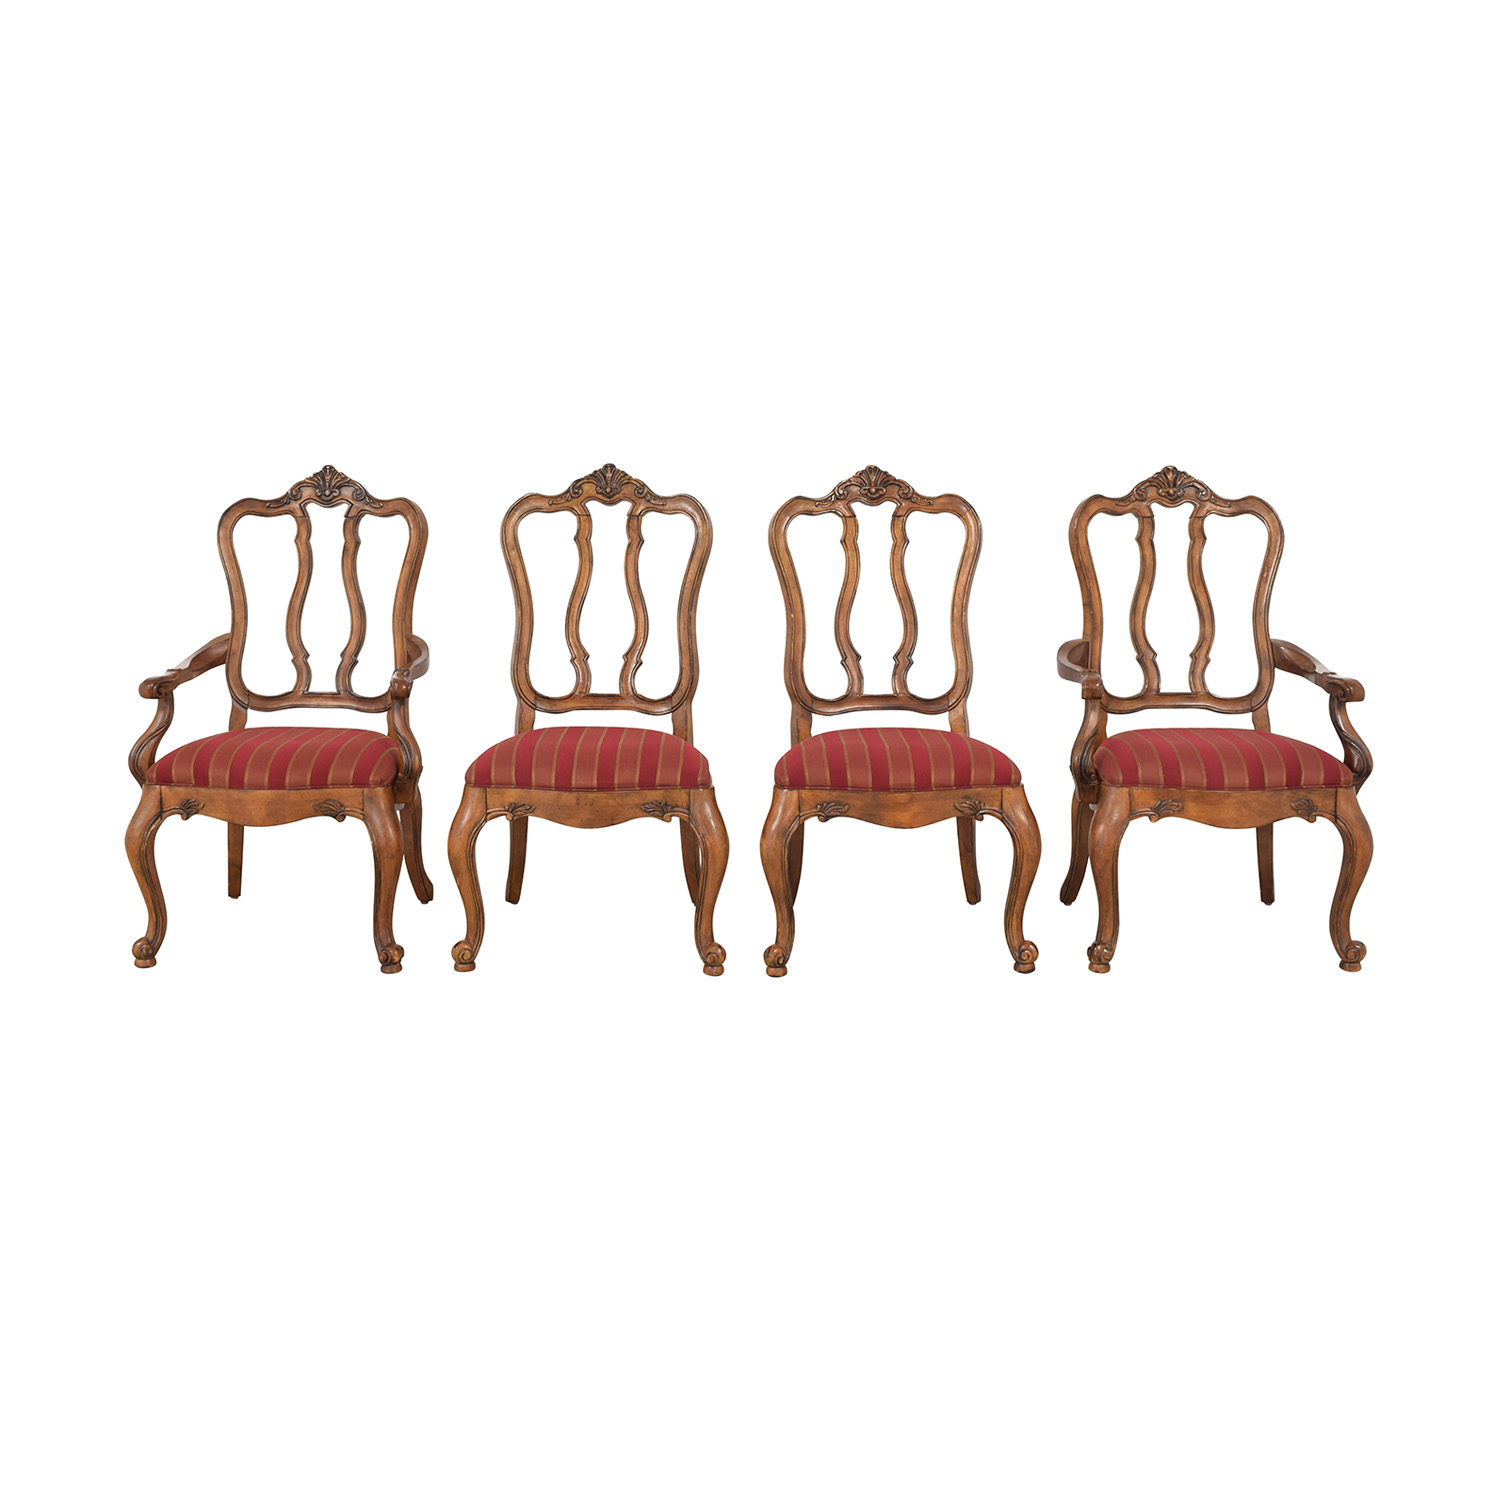 Ethan Allen Ethan Allen Tuscany Augustine Dining Chairs coupon